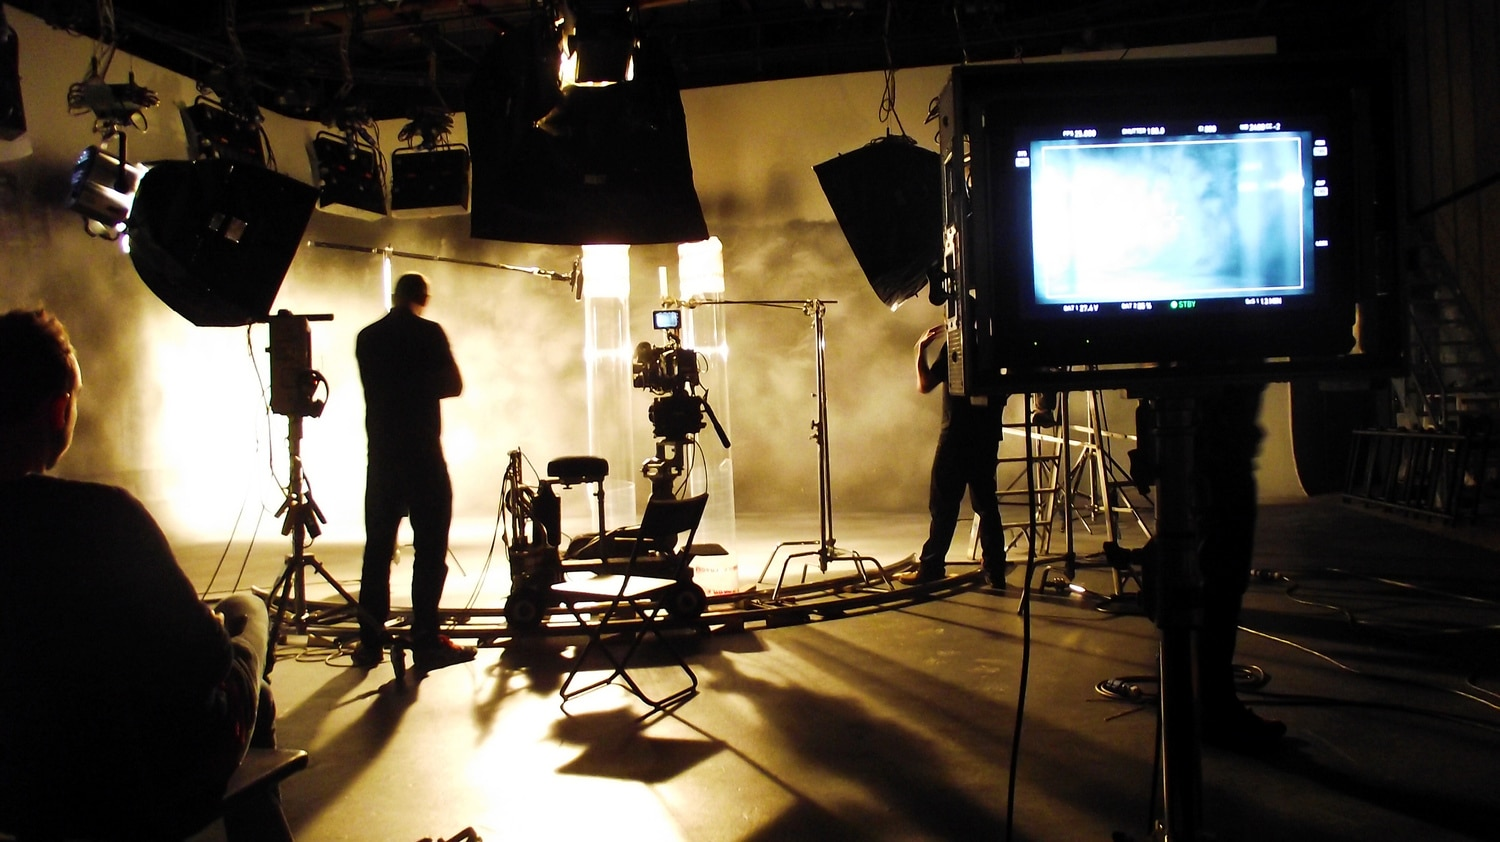 TV commercial production